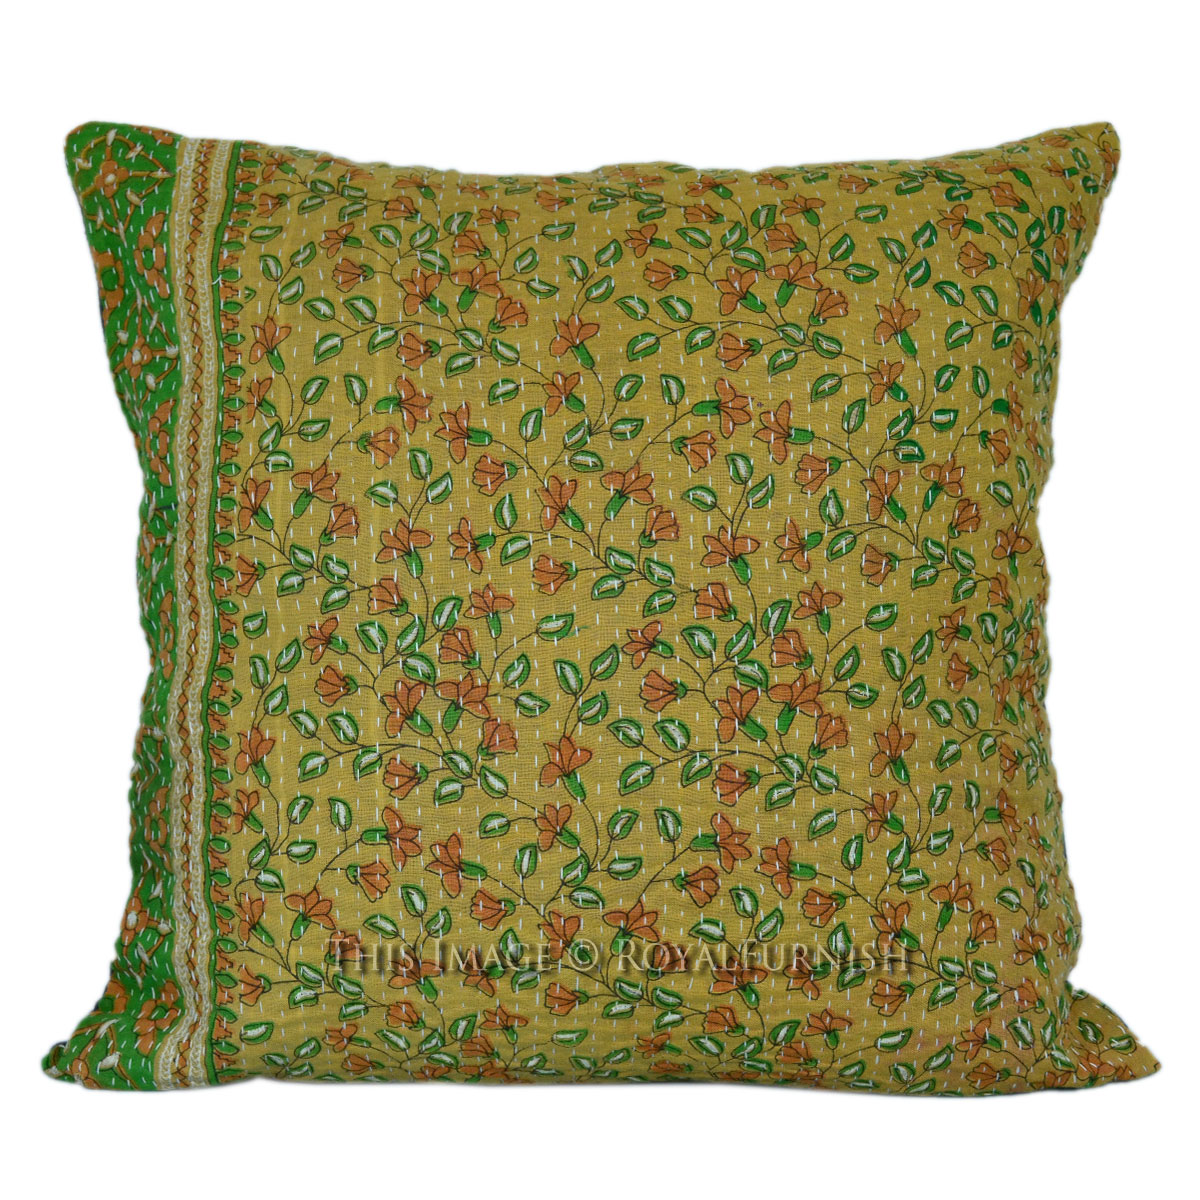 Vintage Throw Pillow Covers : 16